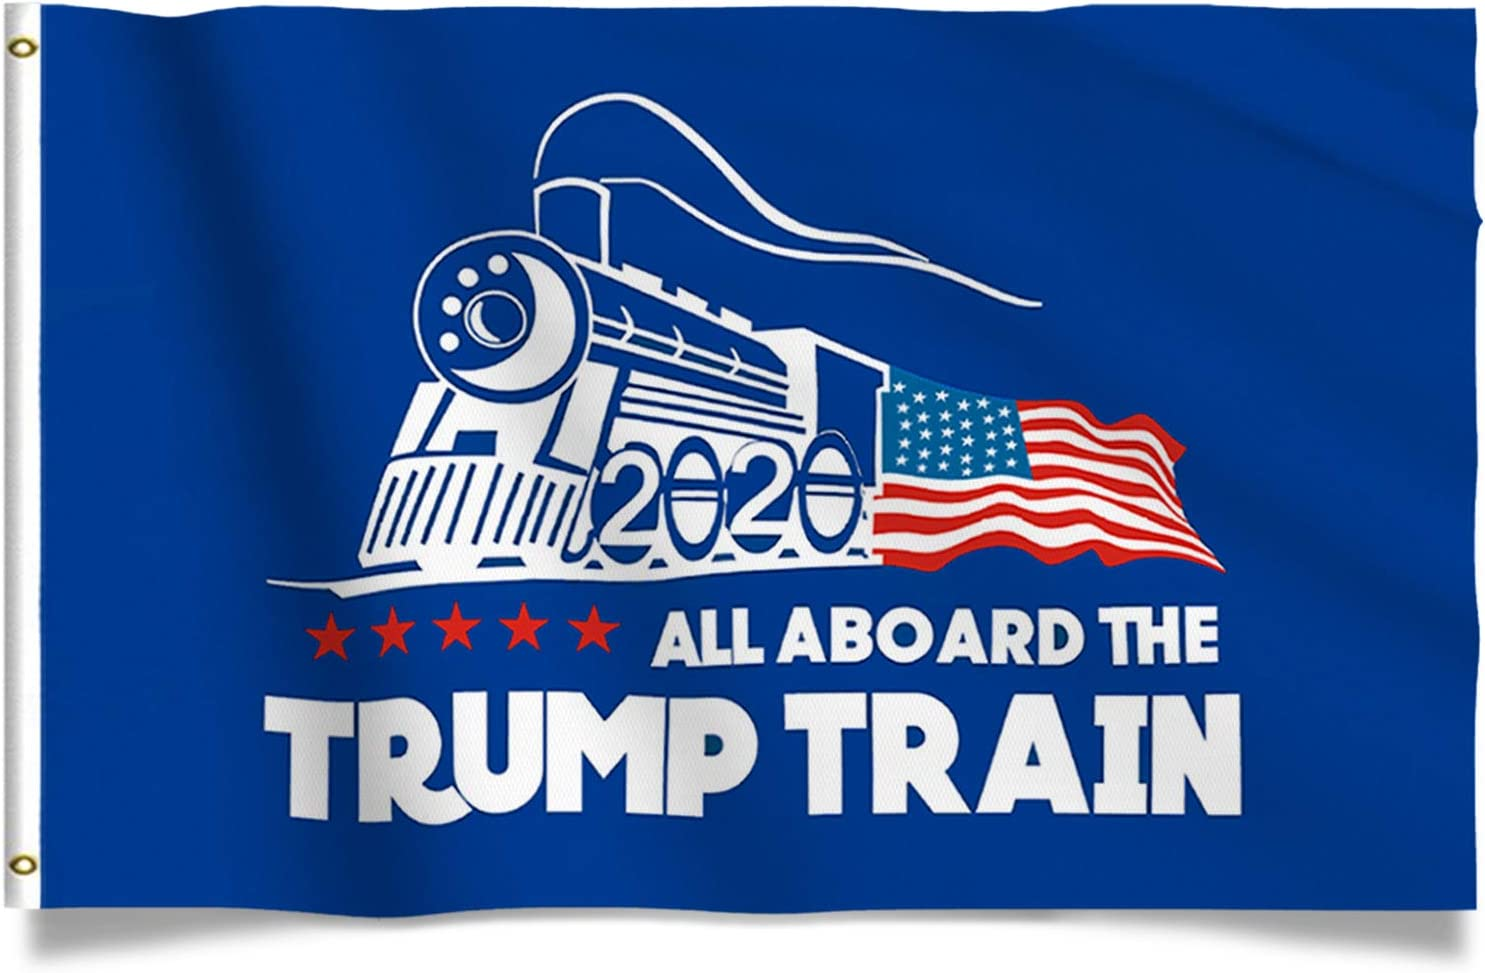 Kaiyuan Dynasty Trump Flag Train Donald Trump Flags Support for President 2020 Banner - All Aboard The Trump Train 3 x 5 feet with Two Brass Grommets